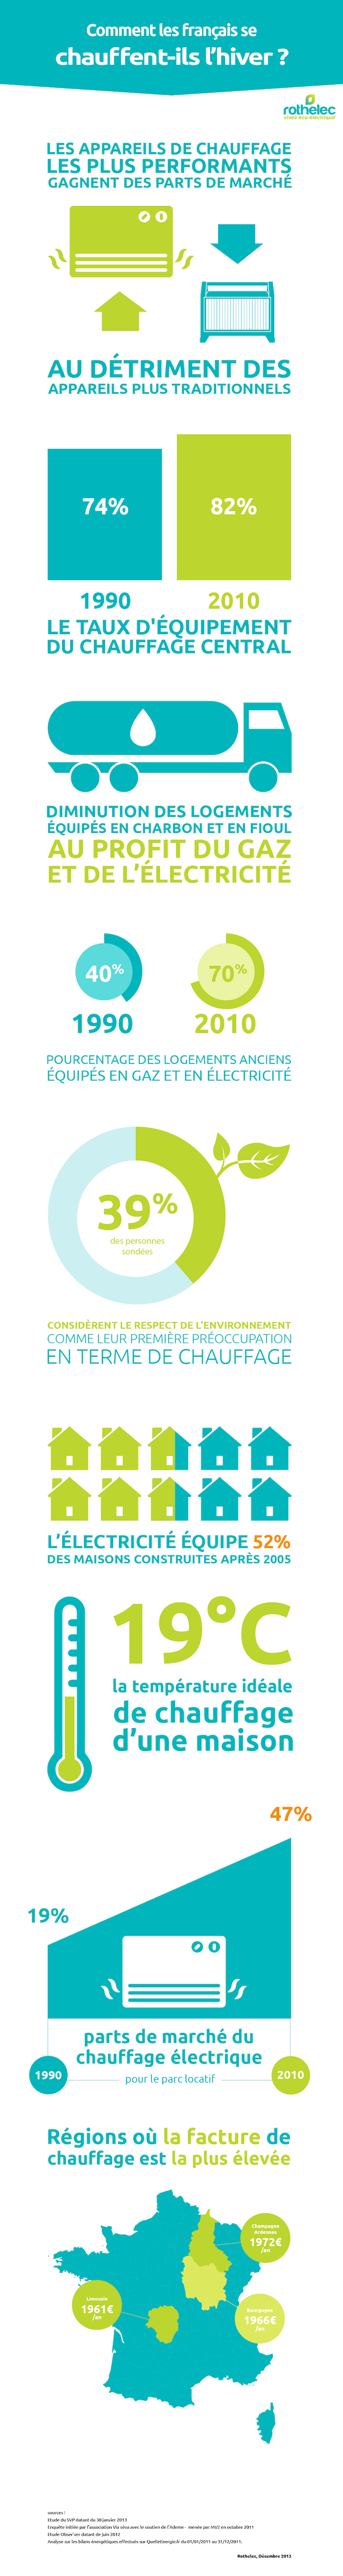 infographie chauffage